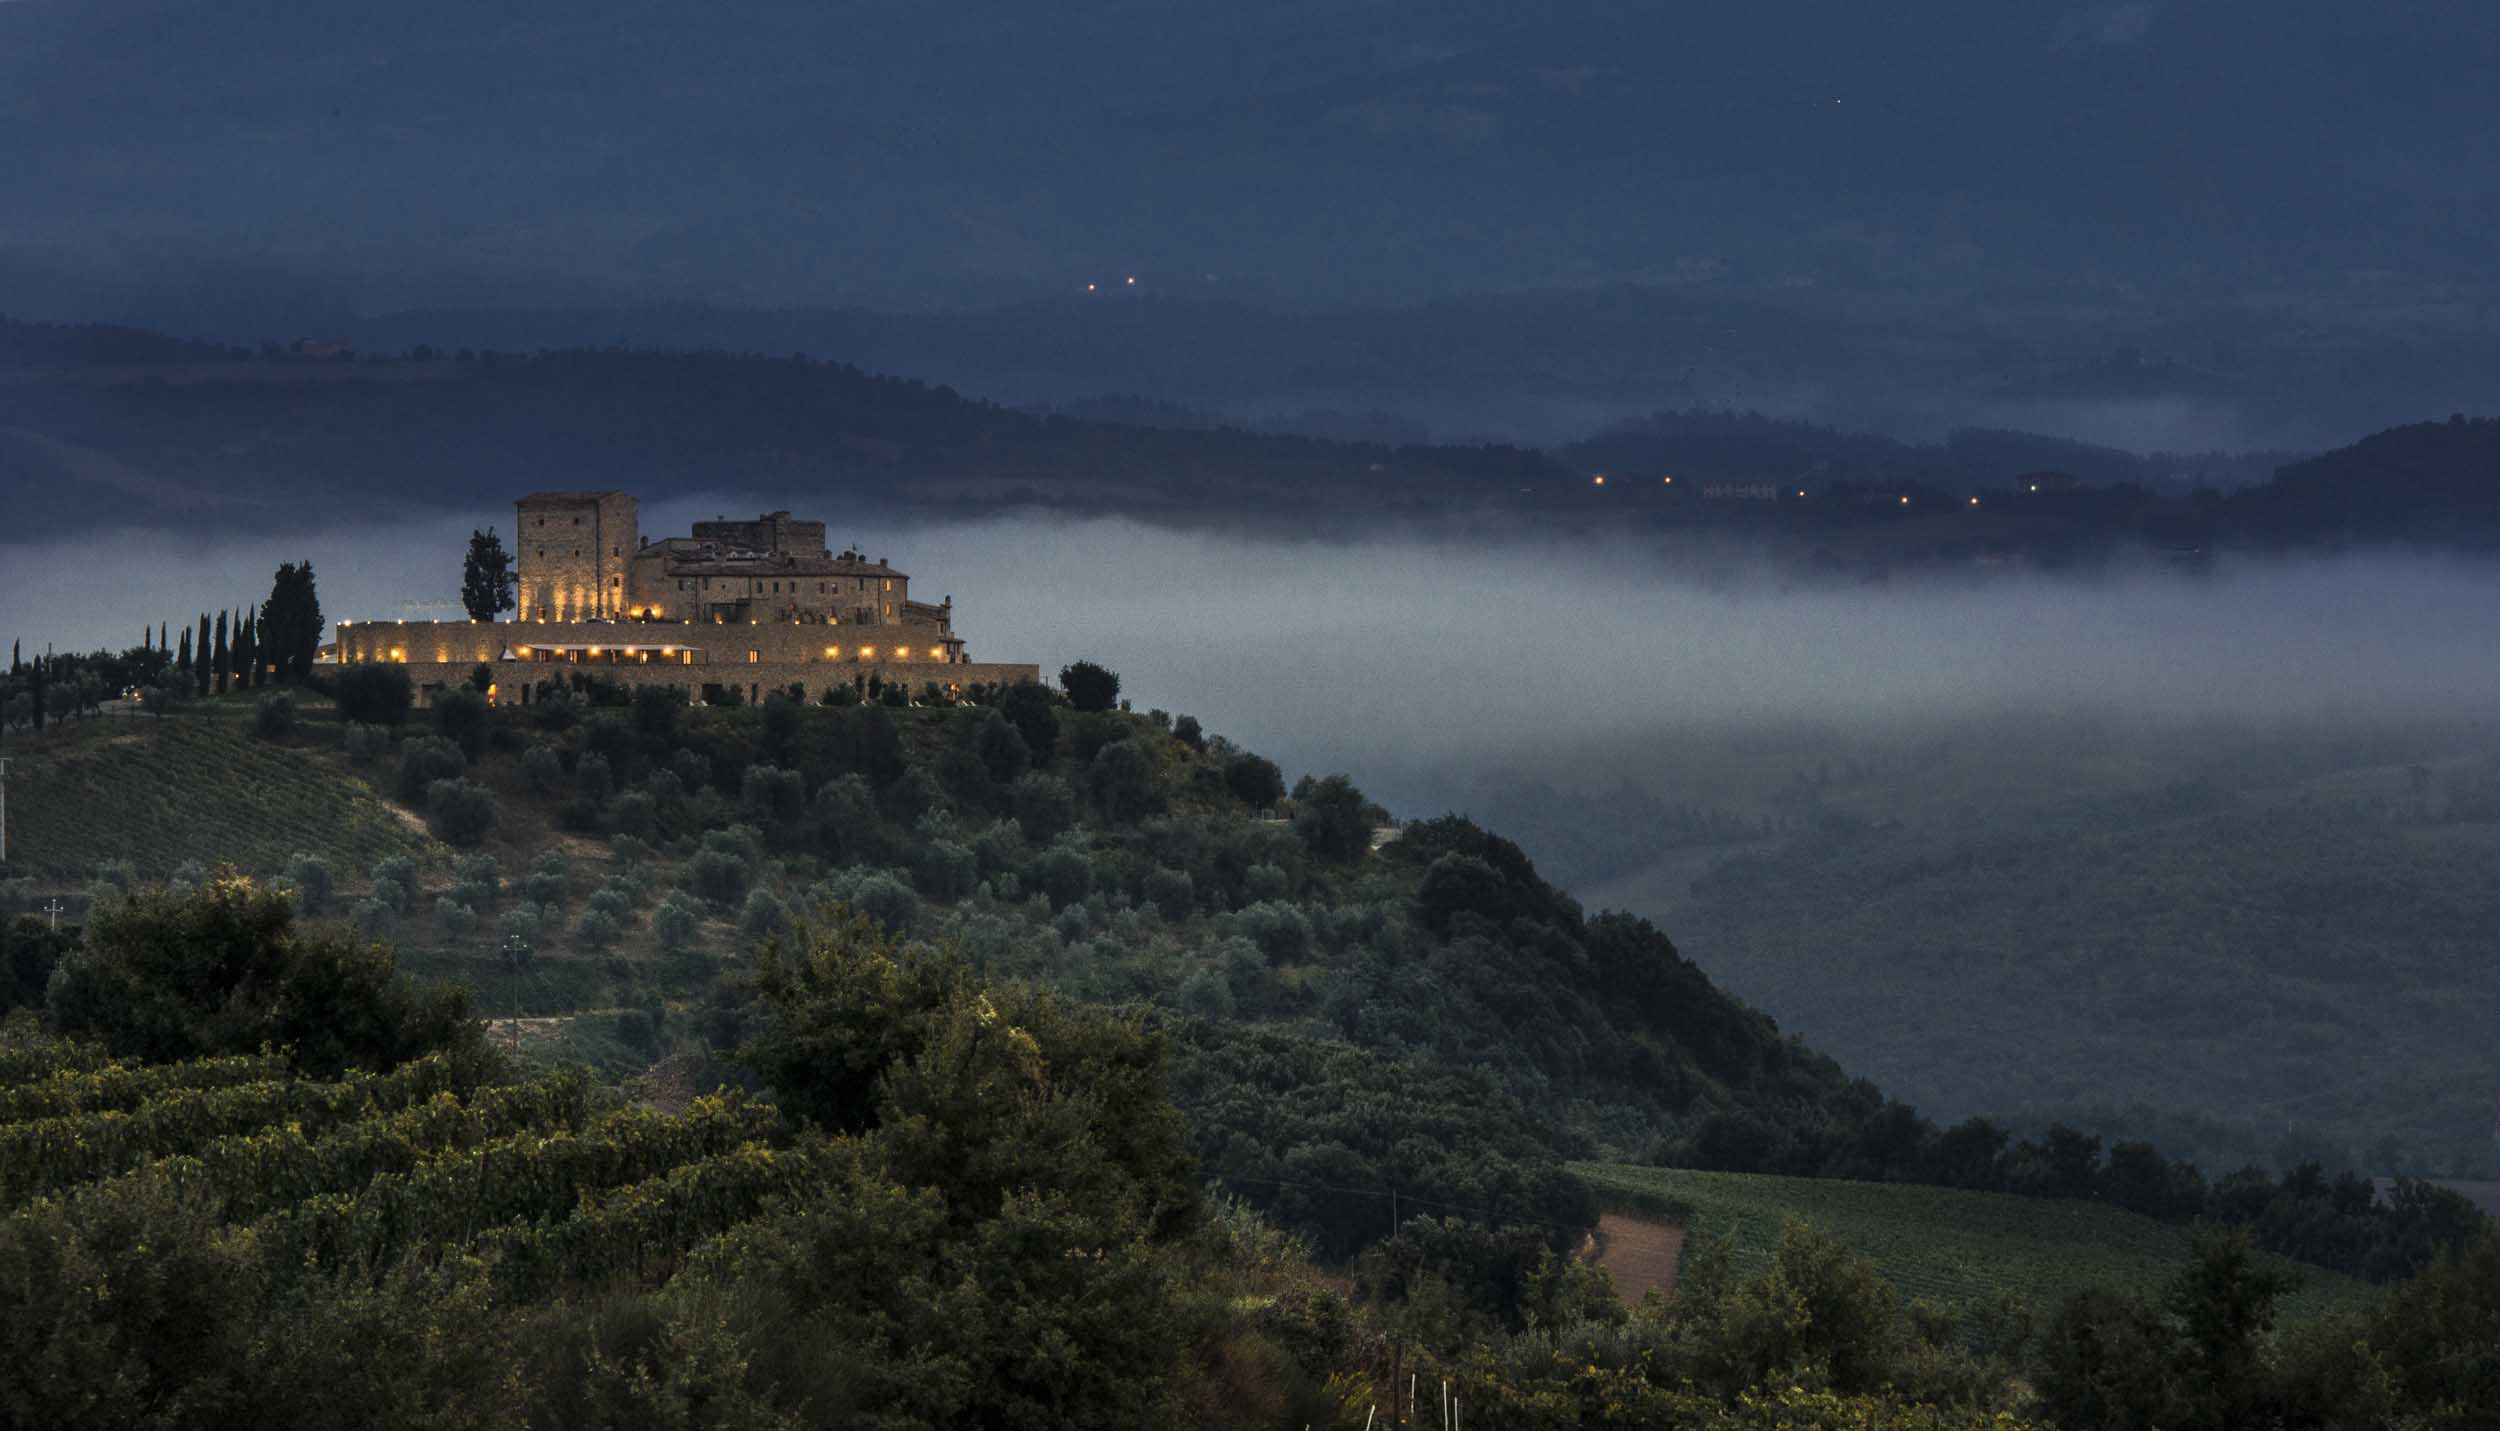 Amazing castle in Montalcino Tuscany